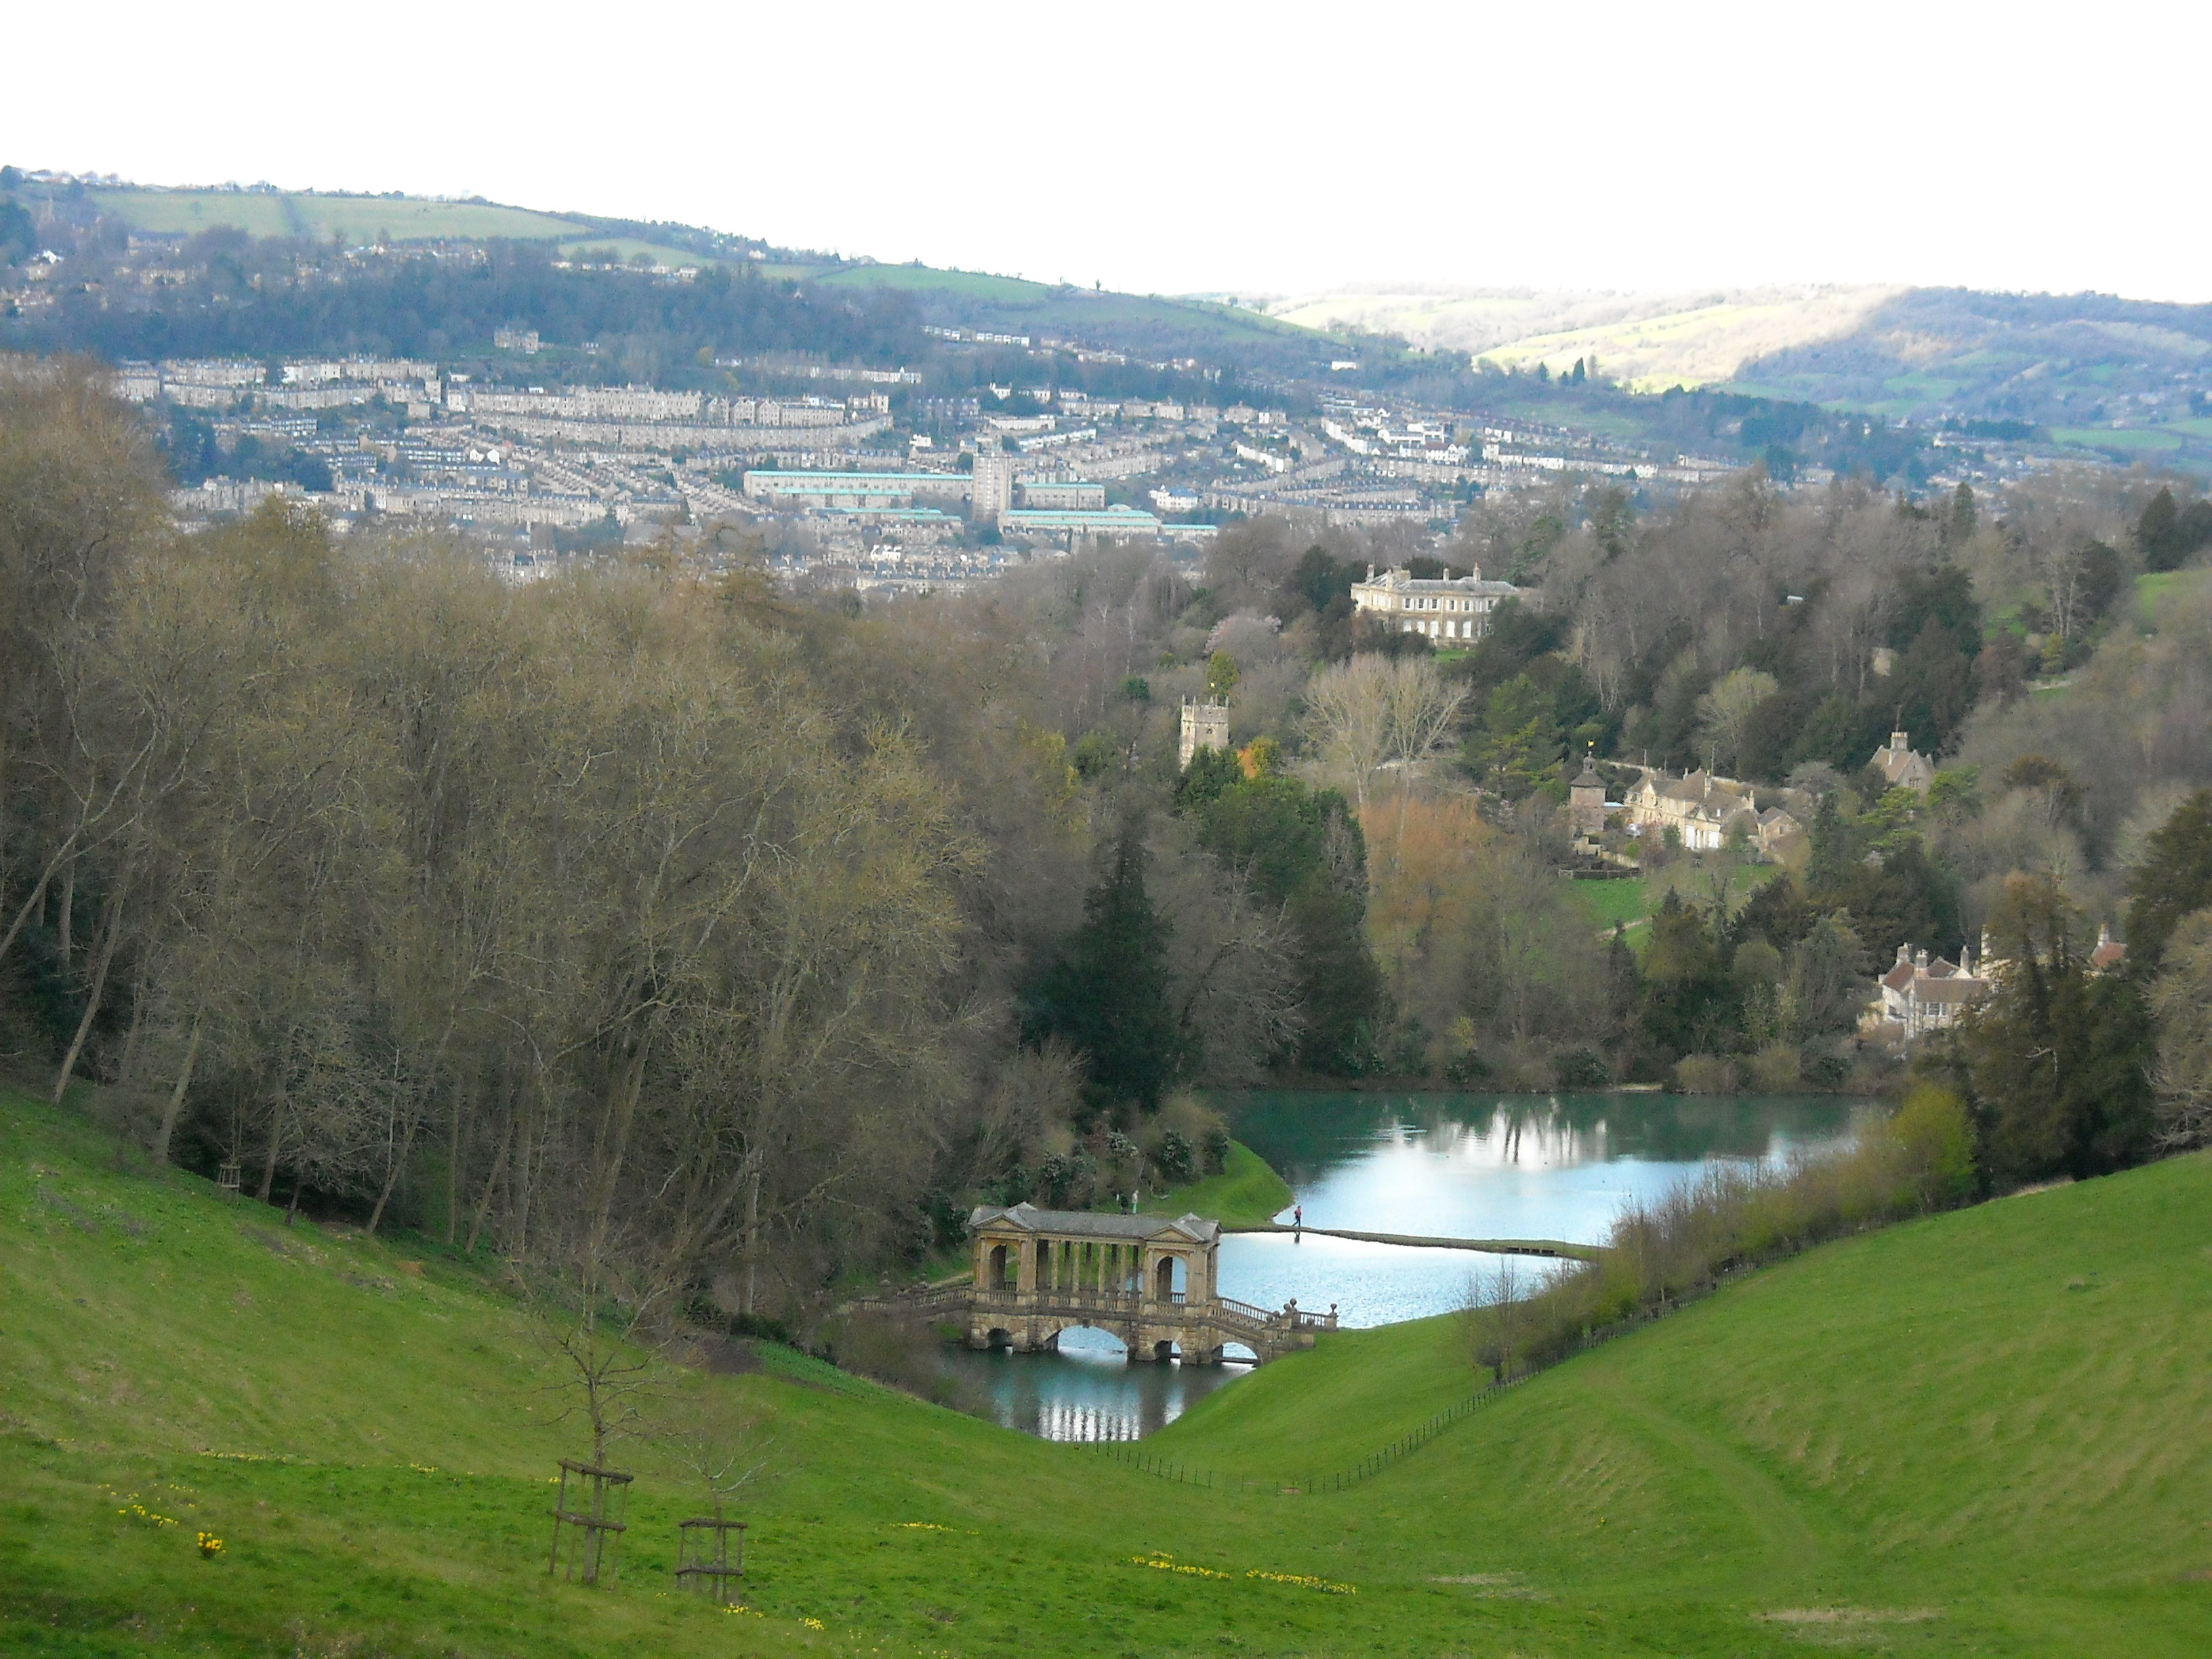 The view out from Ralph Allen's neo-classical mansion across his landscape garden (created 1740s-60s) to the Georgian city of Bath. Placed in an ideal landscape setting between two lakes is the Palladian Bridge, one of only three in the country (the others are at Wilton House and Stowe).